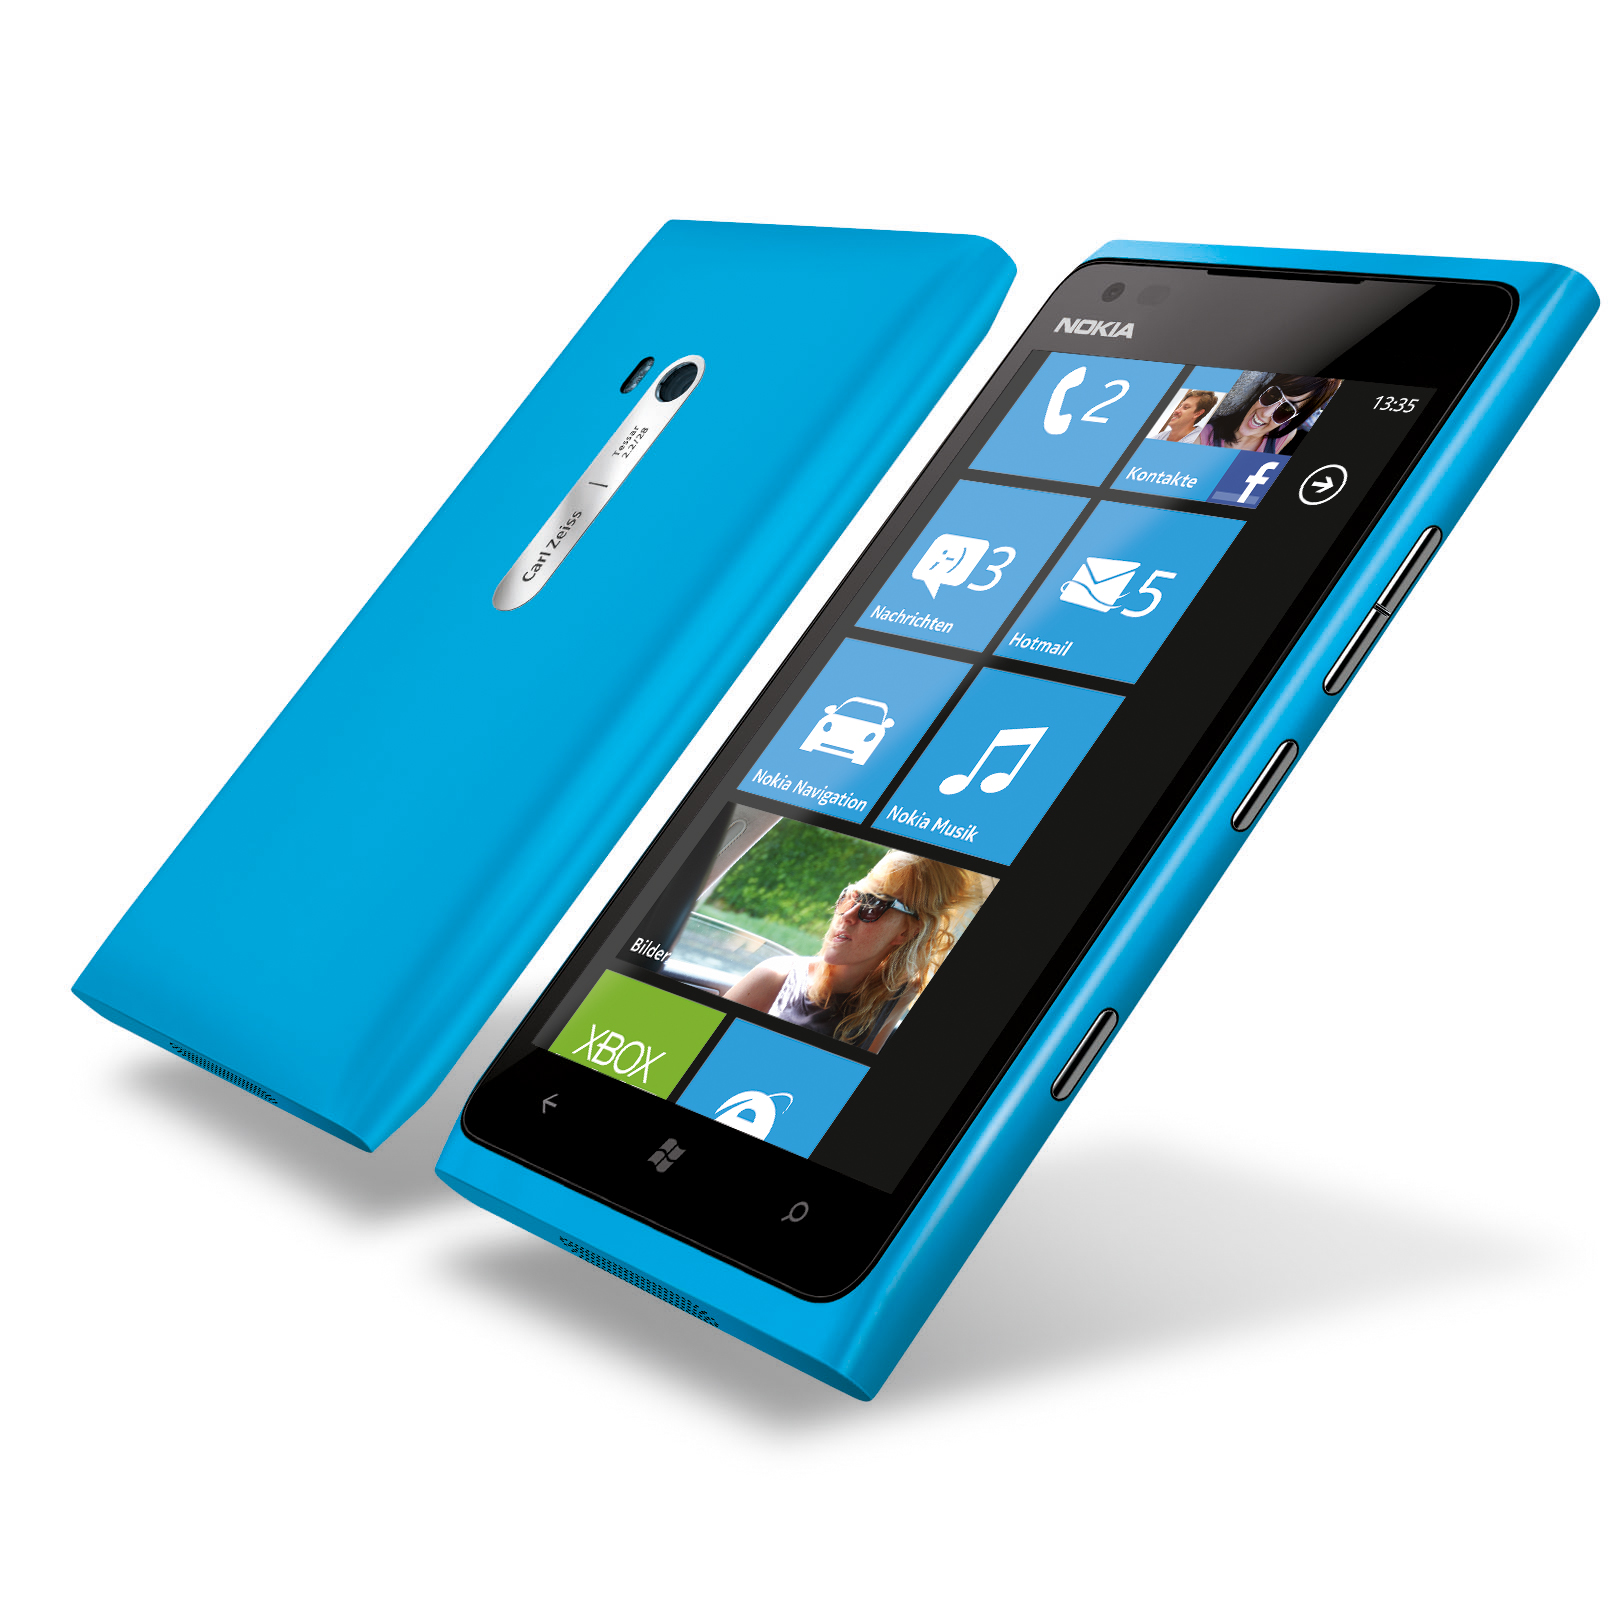 900 cyan combo black Nokia Lumia 900 –Das neue Windows Smartphone